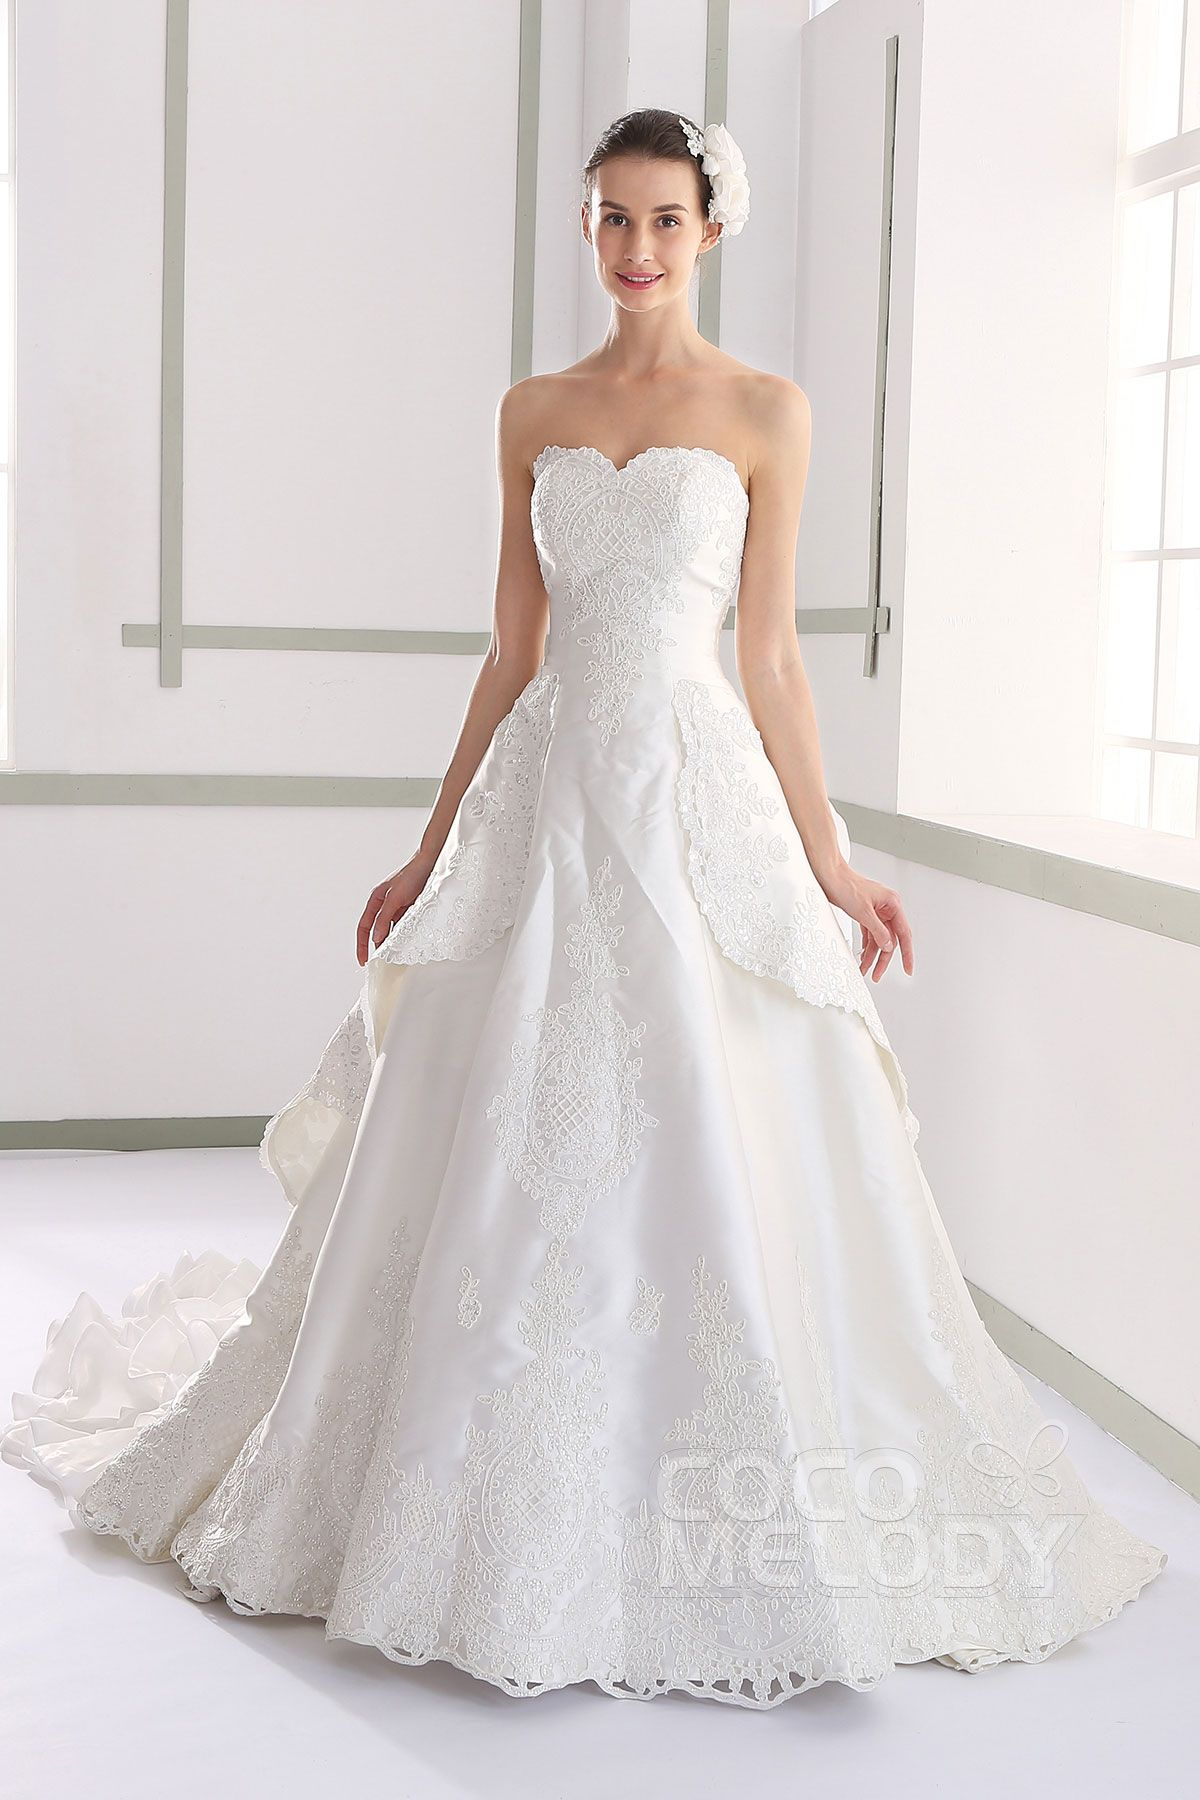 Lovely+A-Line+Sweetheart+Natural+Chapel+Train+Satin+and+Lace+Ivory+Sleeveless+Wedding+Dress+with+Appliques+Beading+and+Removable+Train+LWLT1401B